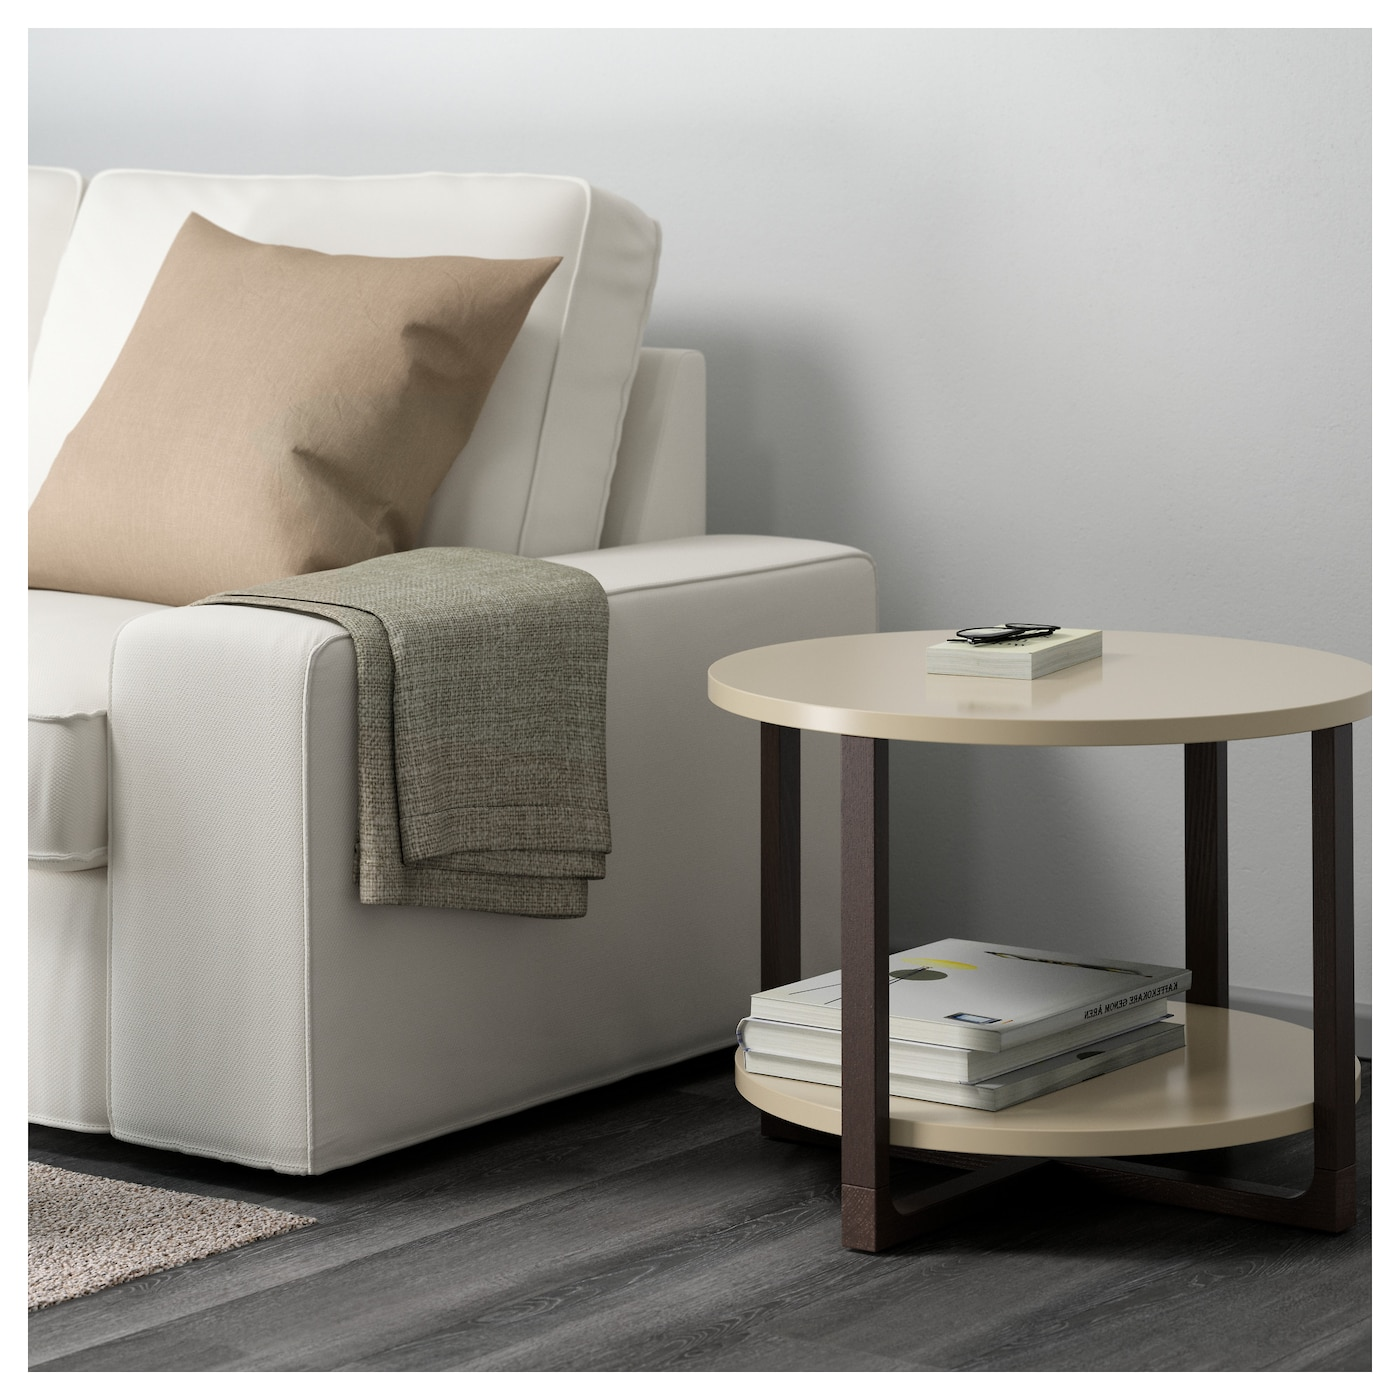 Ikea Coffee Table Material: RISSNA Side Table Beige 60 Cm